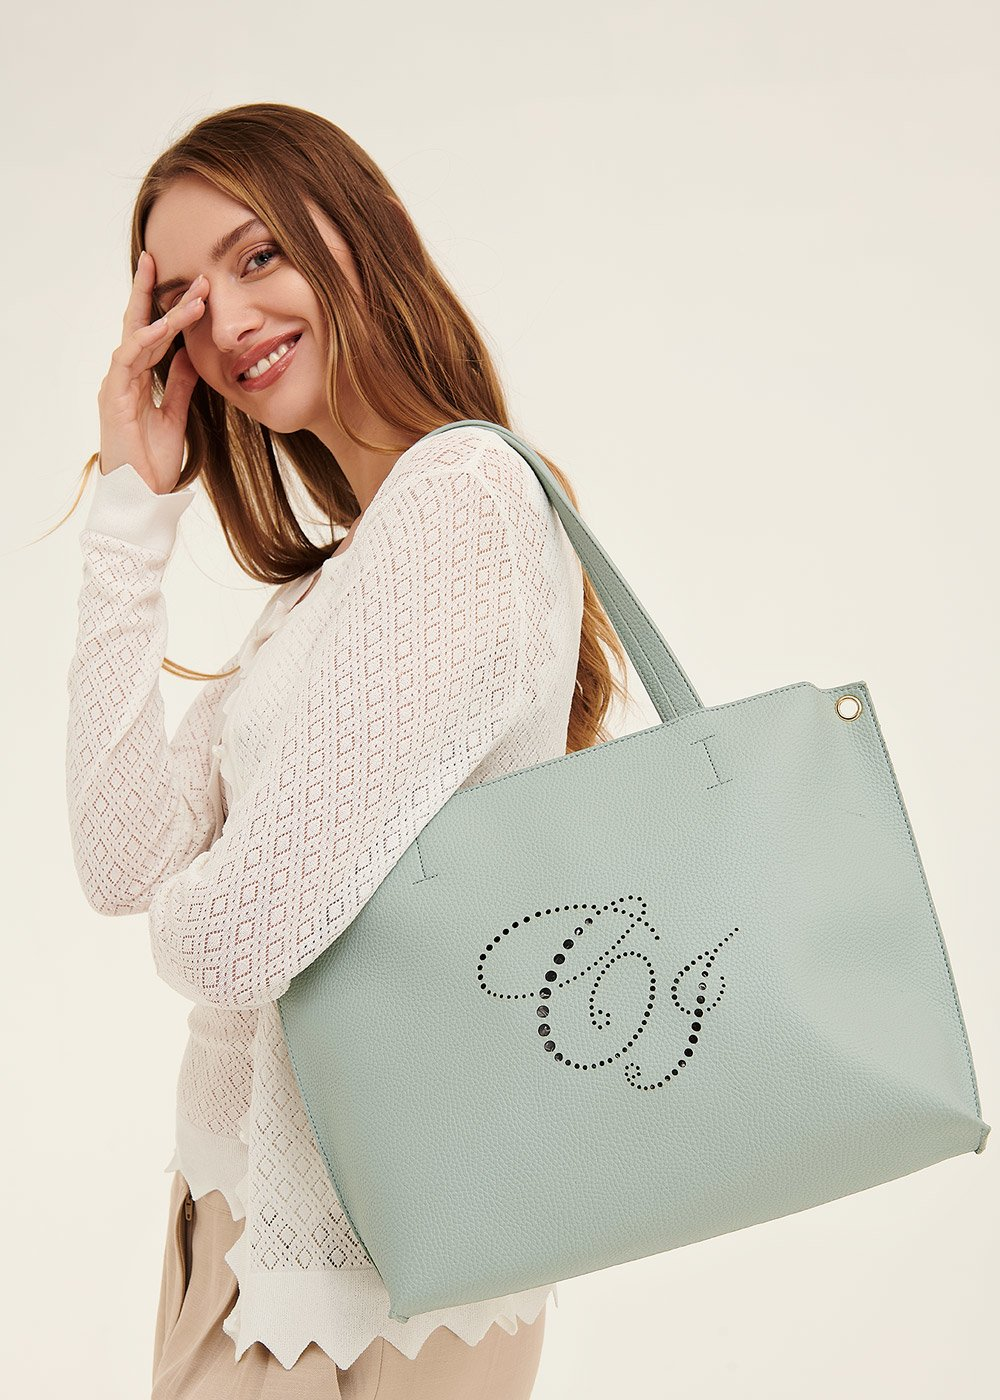 Shopping bag Bridge con logo traforato - Argilla - Donna